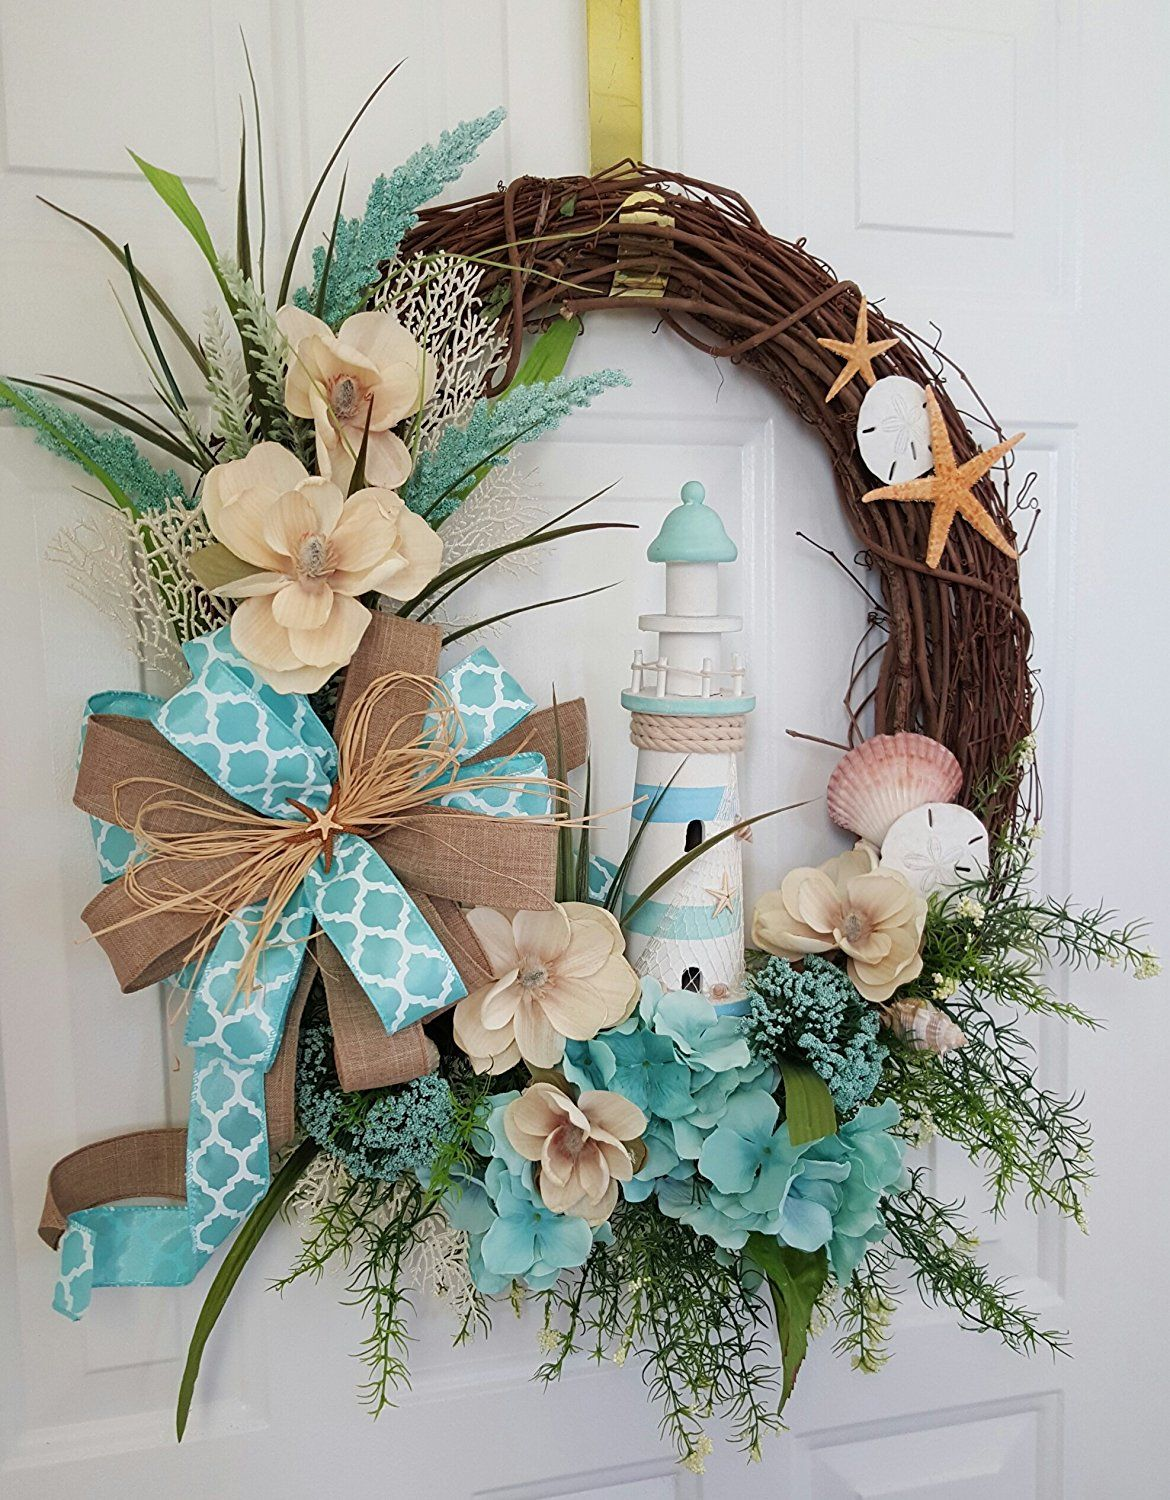 Beachy Wreath with Turquoise Starfish and Clam Shell-Beach Wreath with HOME Sign-Turquoise  Shell Wreath-Home Sign-Welcome  Wreath-Rustic